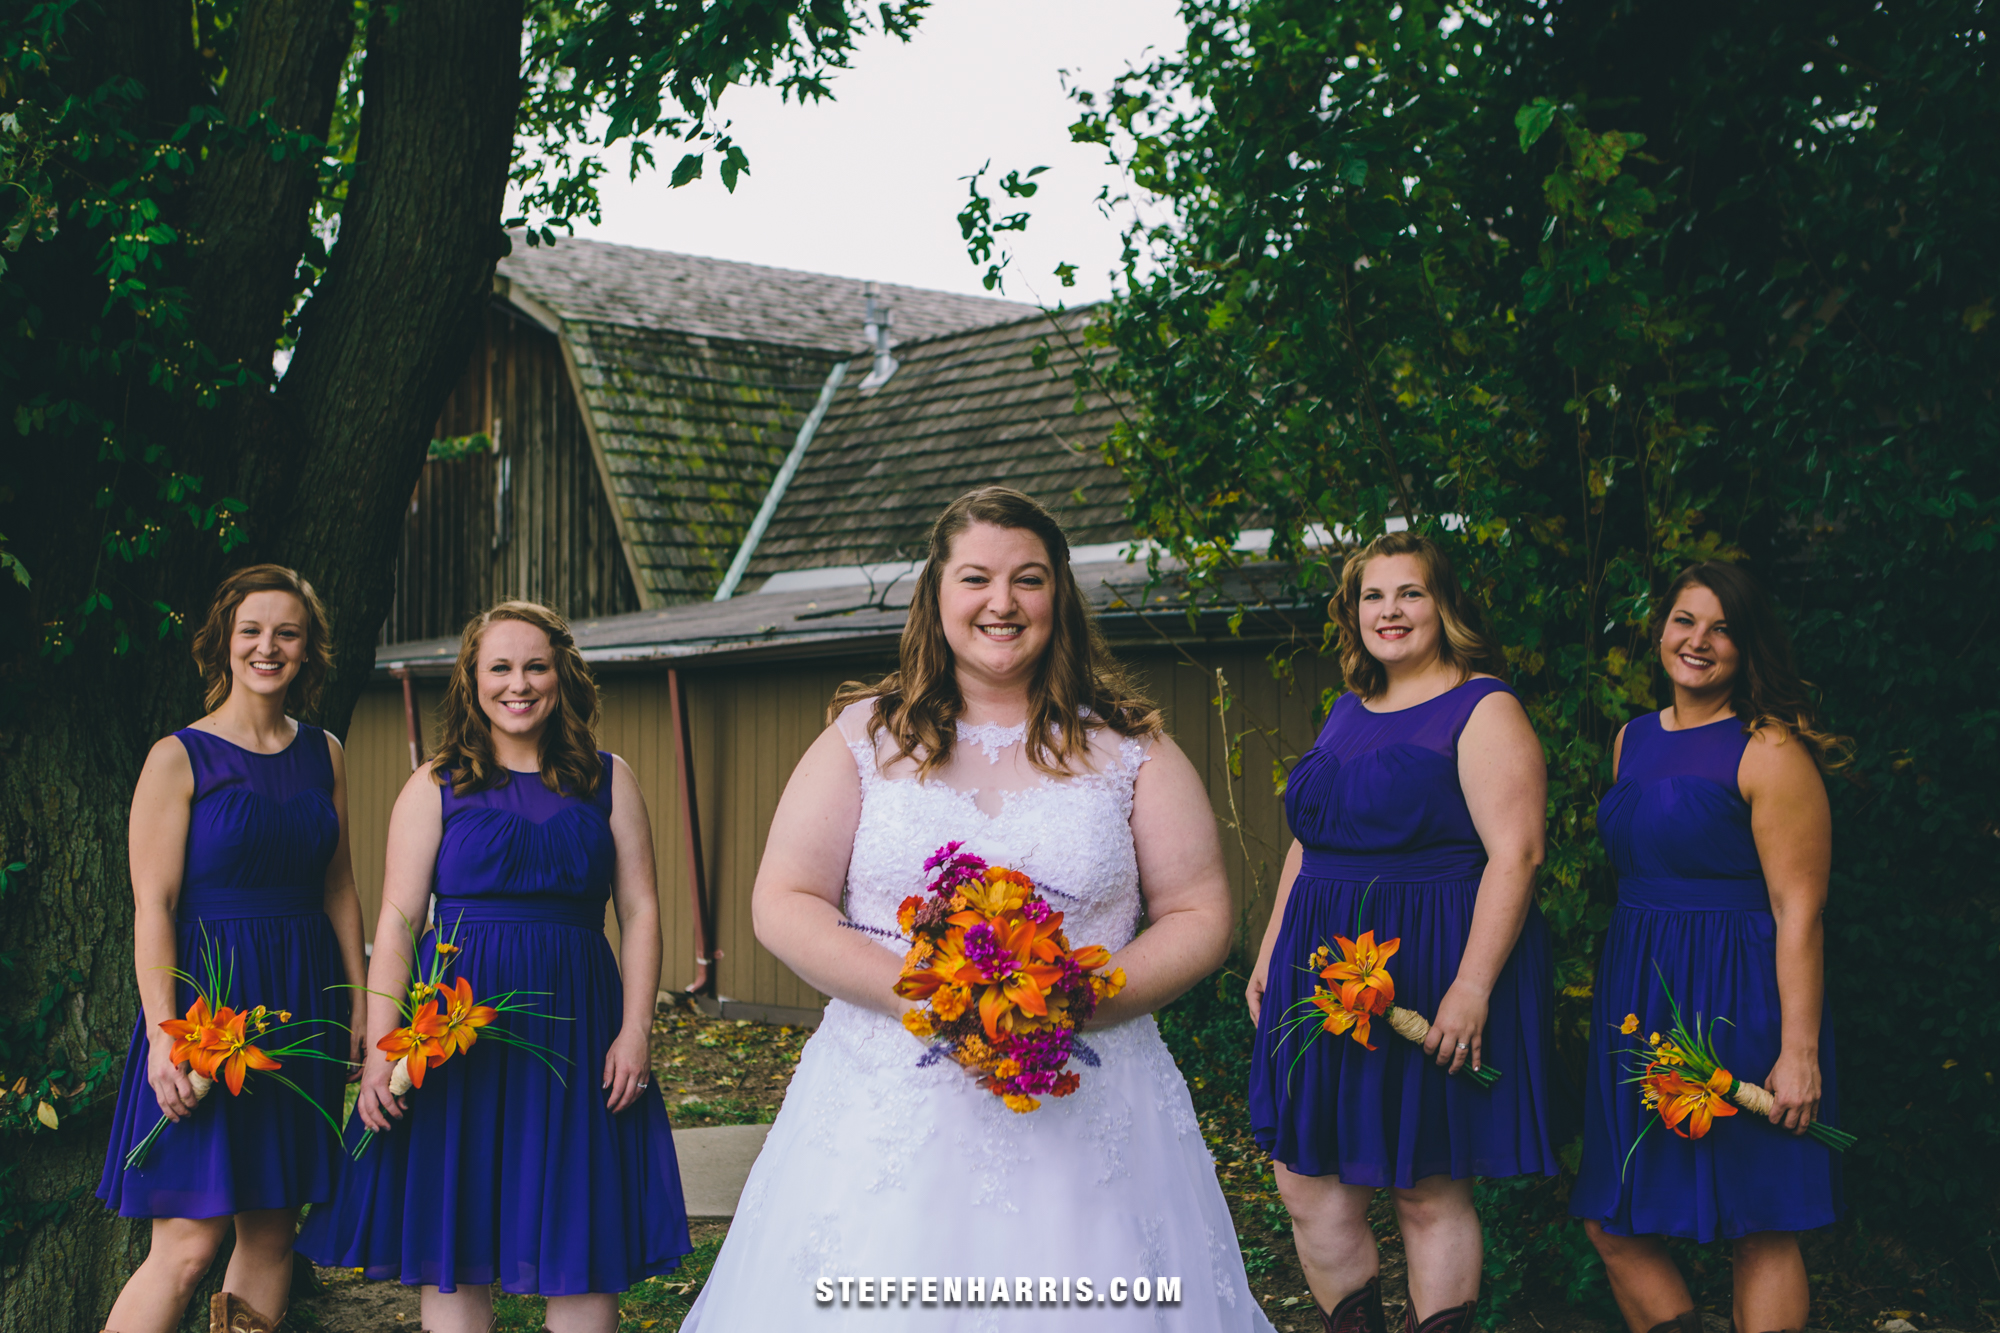 clayton-kelly-kansas-city-wedding-photography-7969